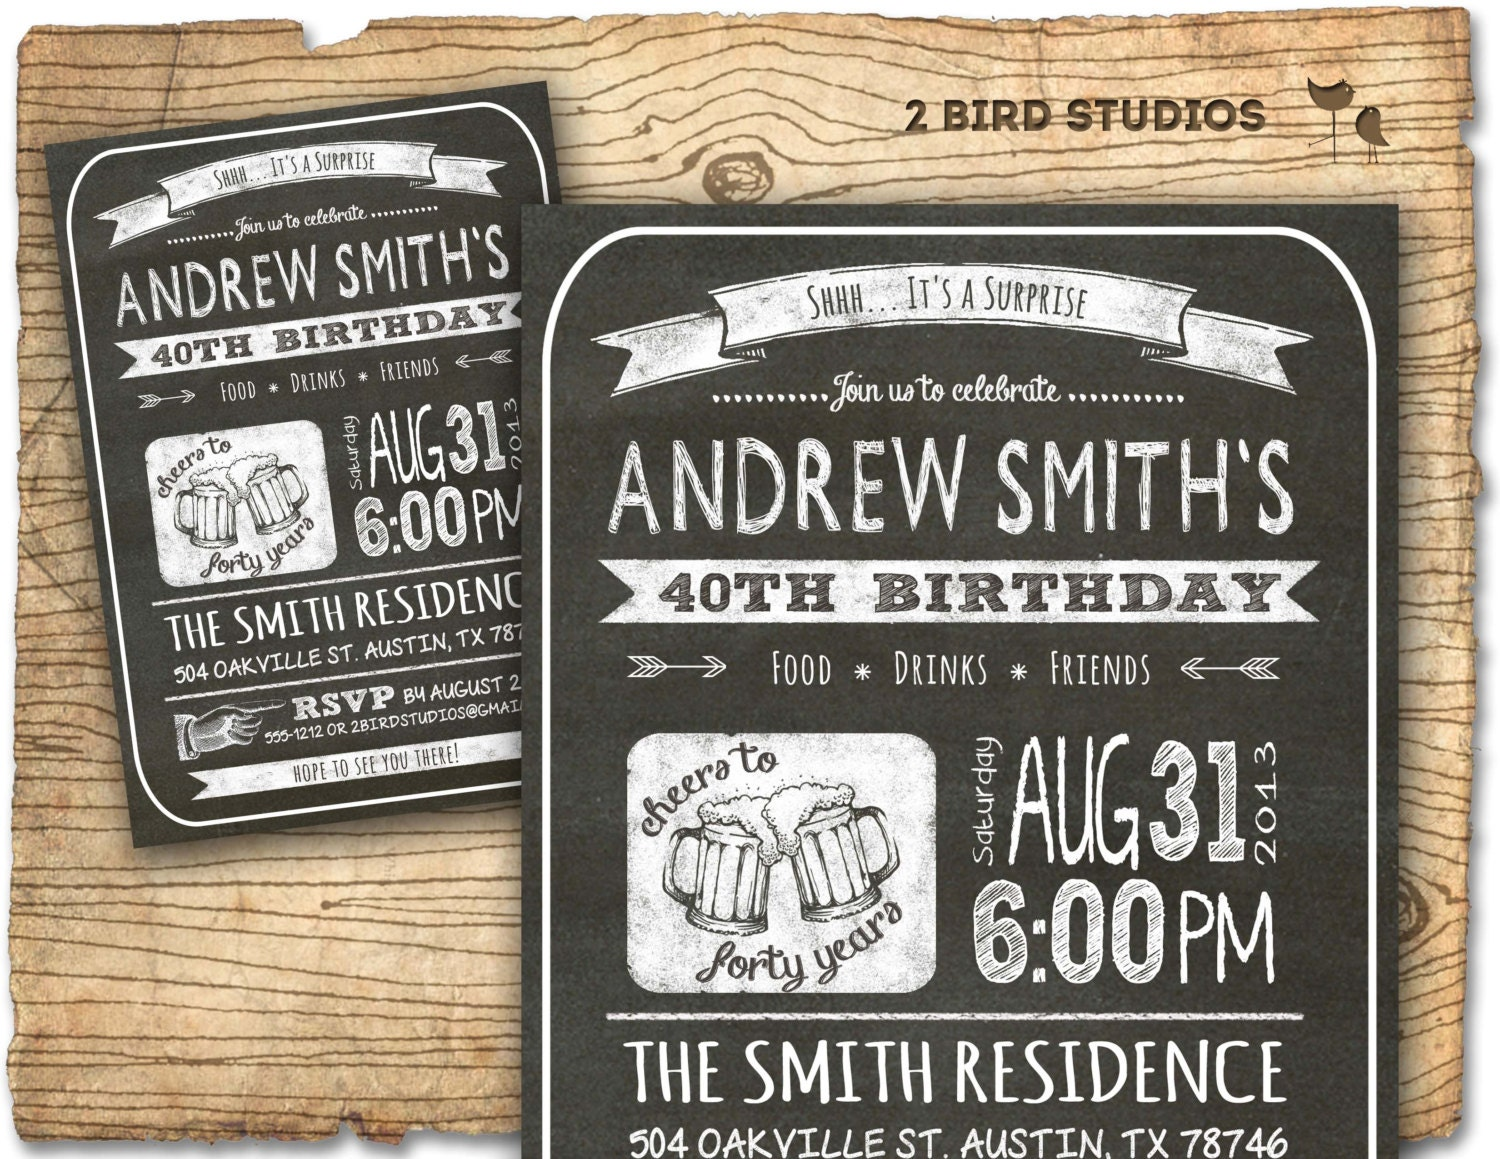 30th birthday invitation Male birthday party invitations – 30th Birthday Party Invitation Wording Samples